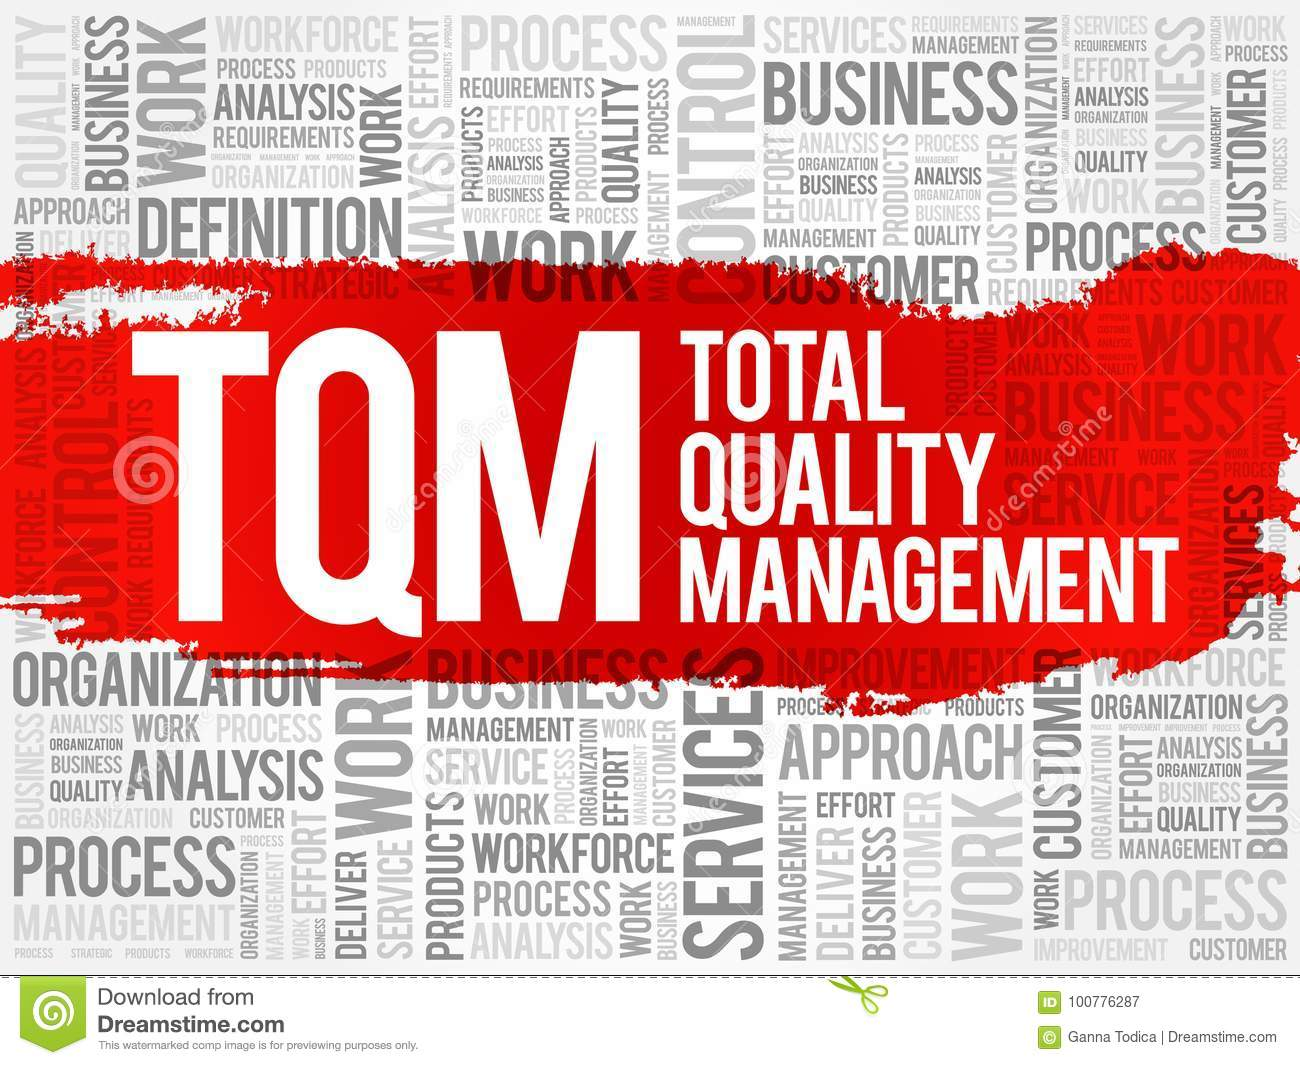 Total Quality Management Implementation and Systems